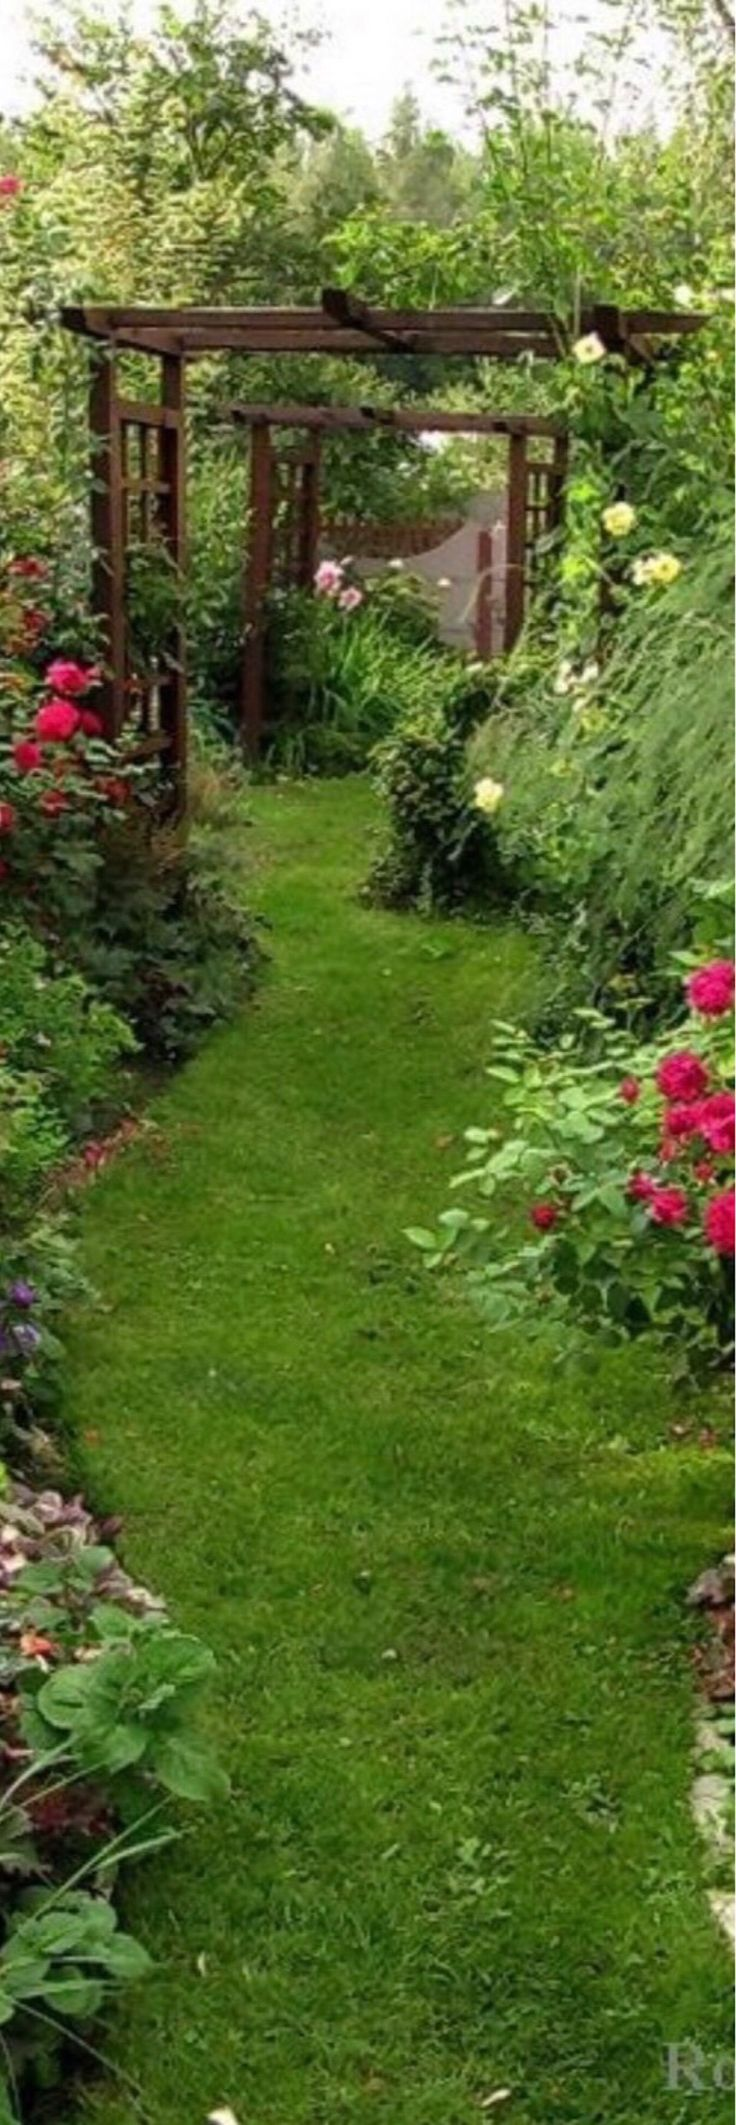 679 best ~GARDEN~ images on Pinterest | Architecture, Beautiful and ...